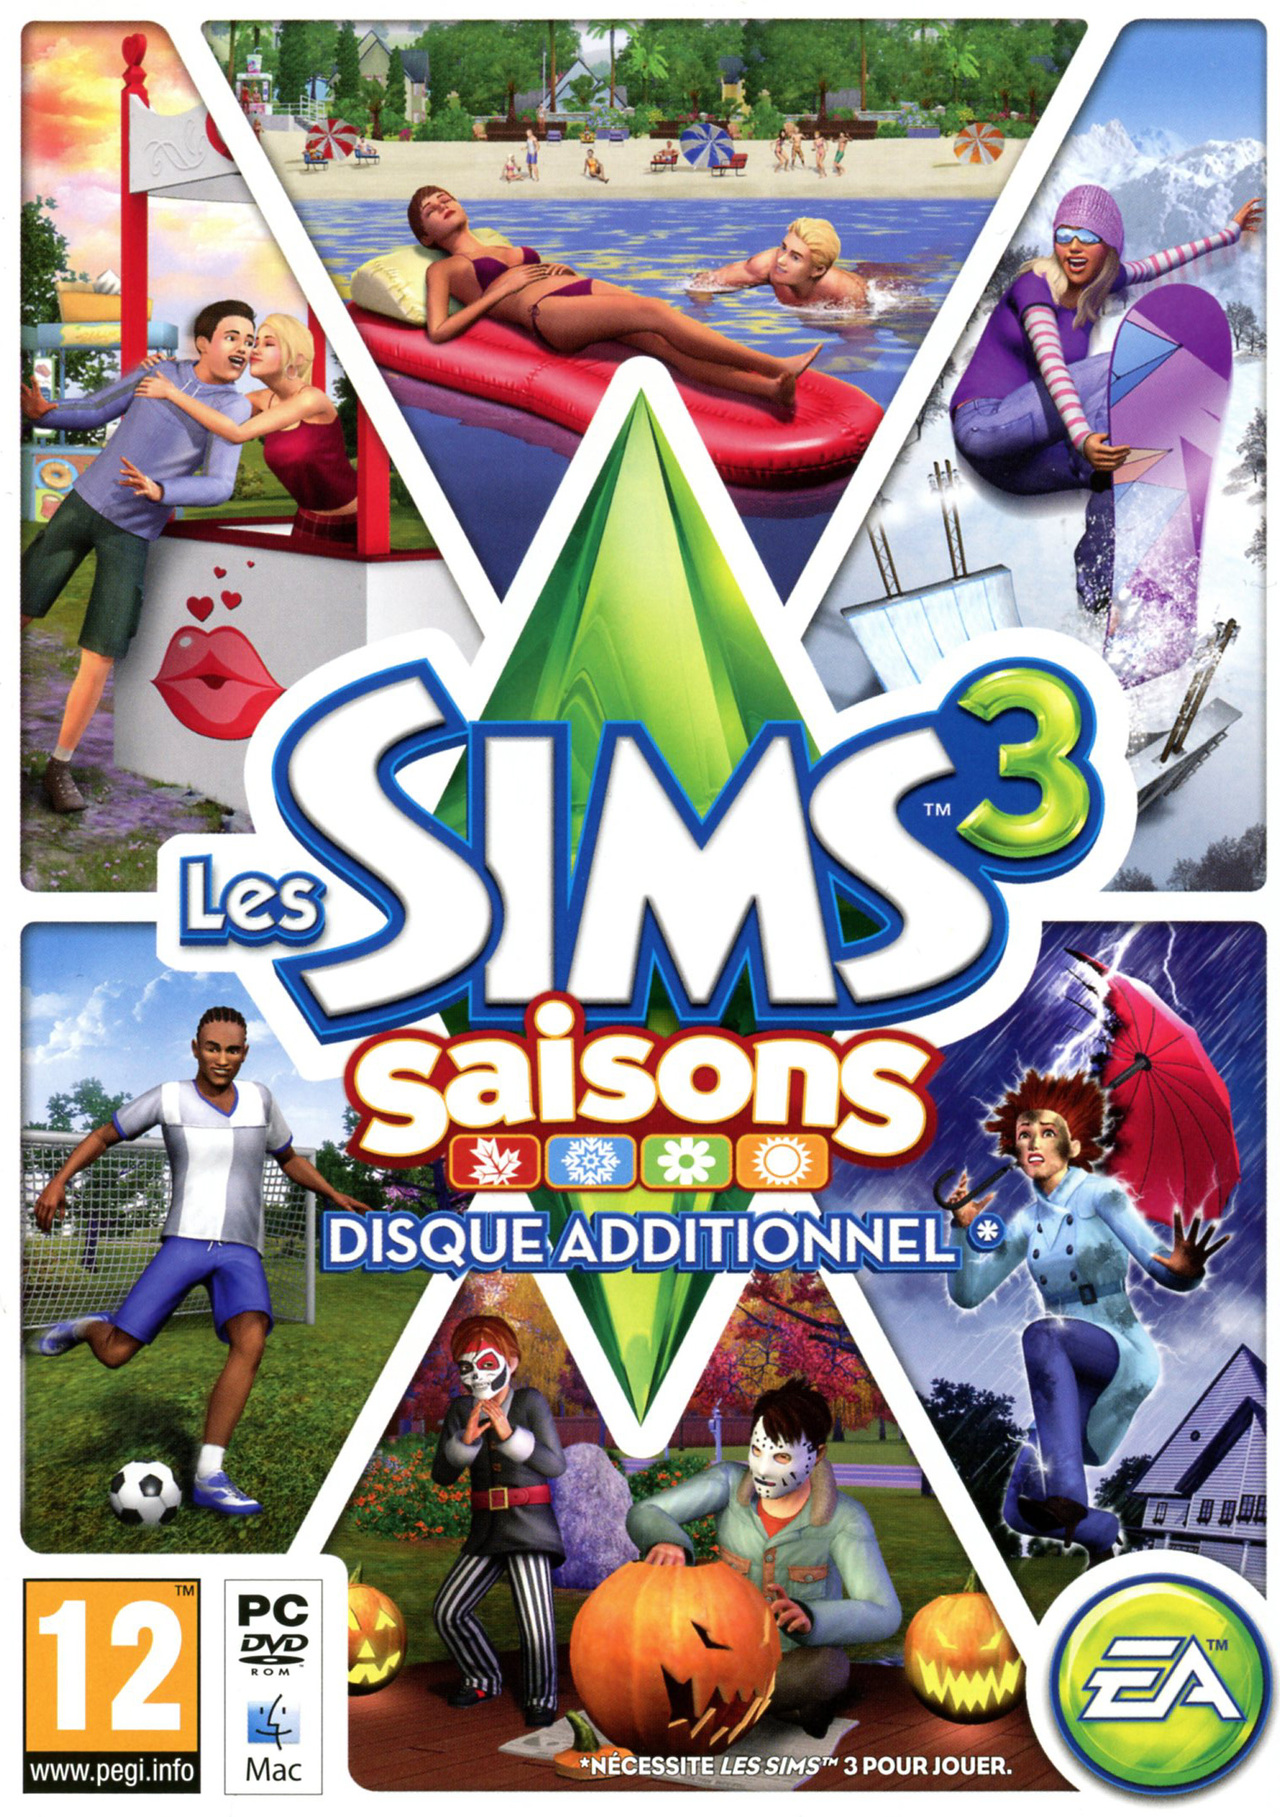 The Sims 3 Seasons [FR] [MULTI]